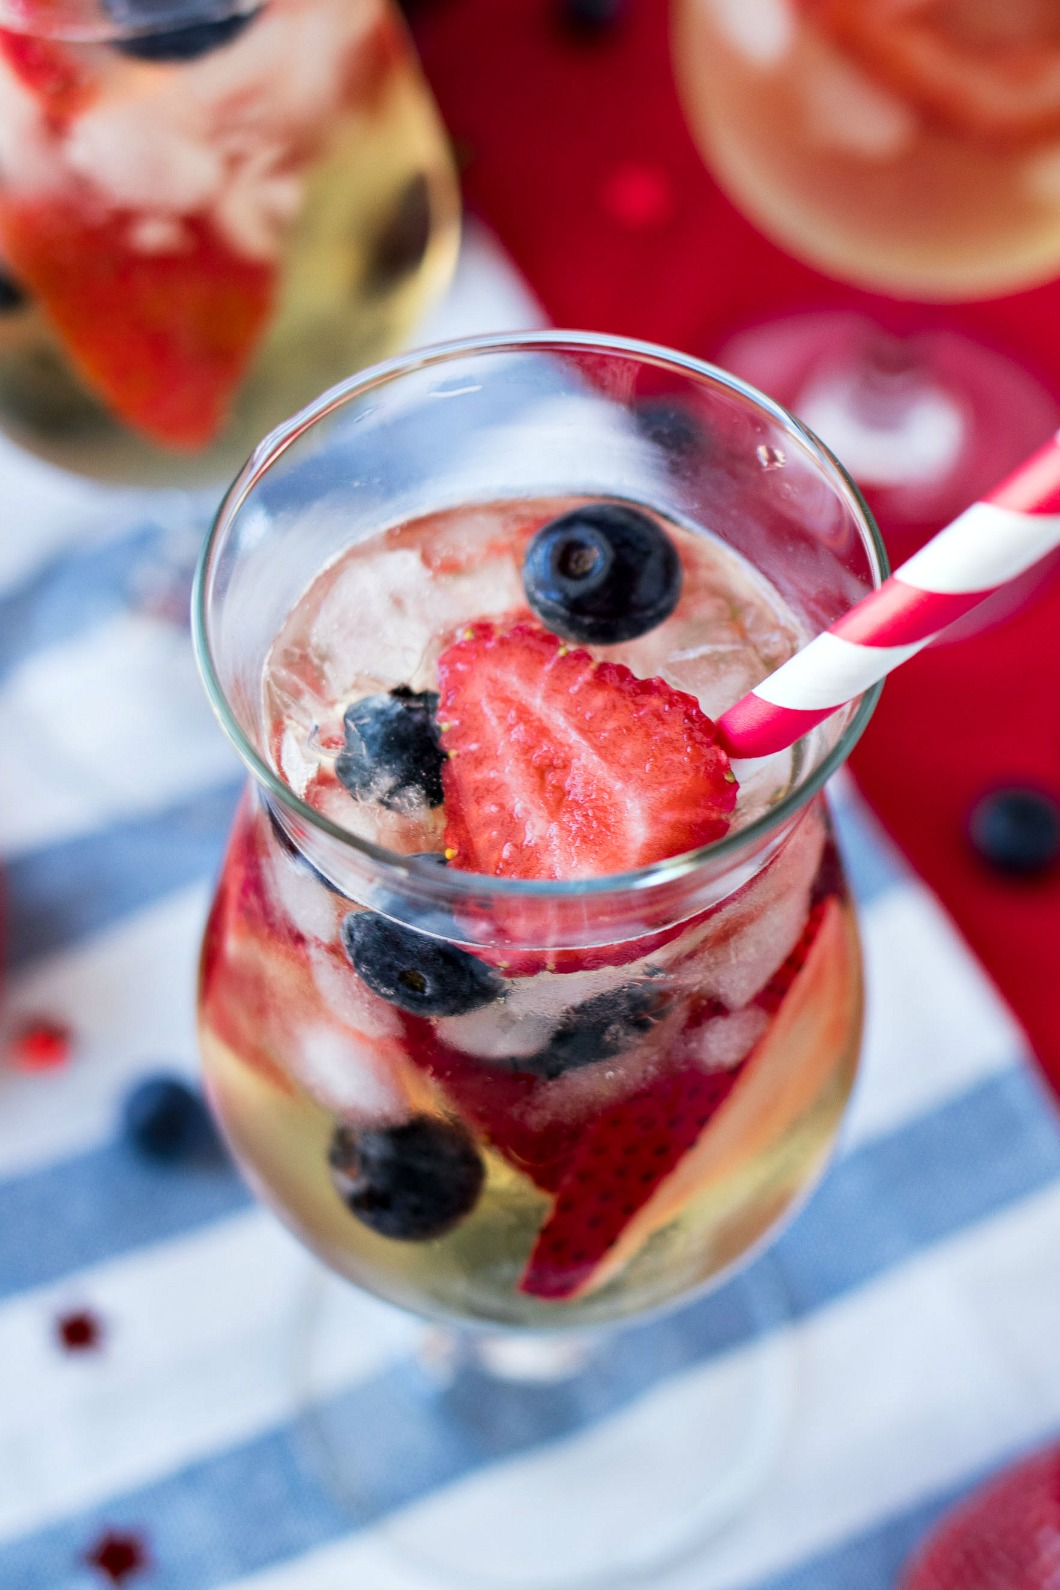 Red, White, & Blue Sangria - A refreshing white sangria made with dry white wine, brandy, and tons of strawberries and blueberries. It's the best Patriotic drink to serve for Memorial Day, 4th of July, and all summer long!